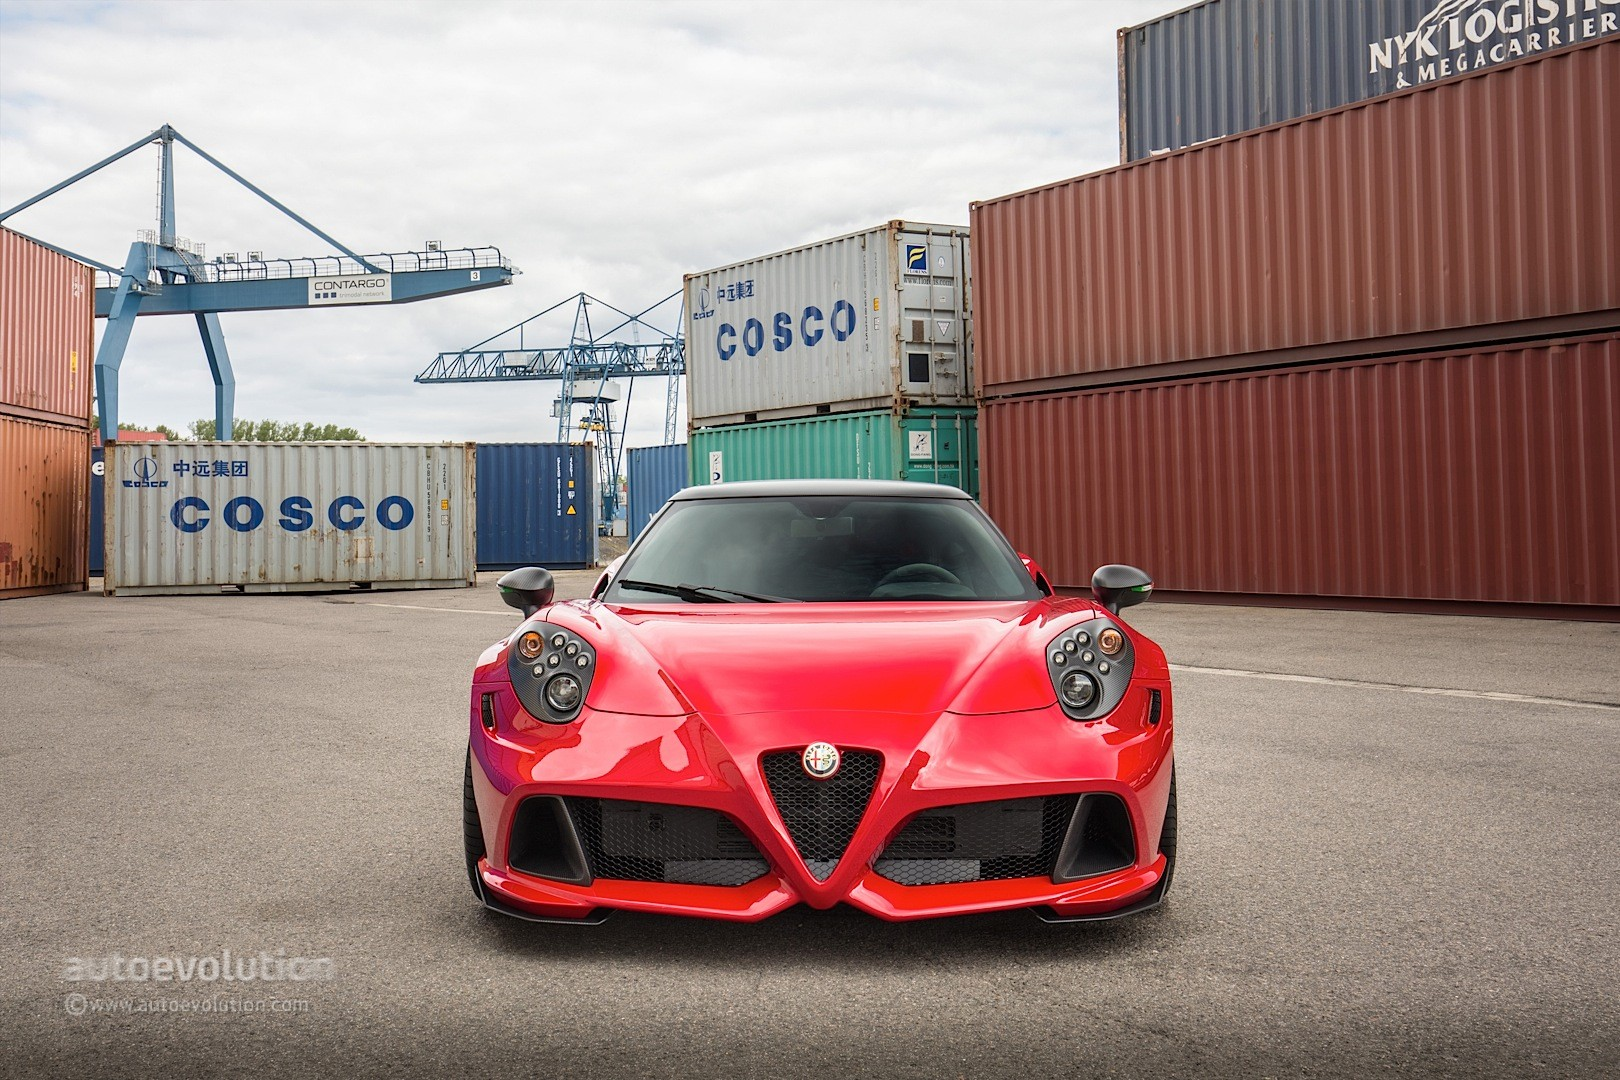 Stelvio furthermore Alfa Romeo 4c Tuned By Zender Italia Is Stunning Video Photo Gallery 100096 additionally VW 20Touareg as well Lil Uzi Vert The Perfect Luv Tape likewise Giulia prix Neuve 6324. on alfa romeo aw30